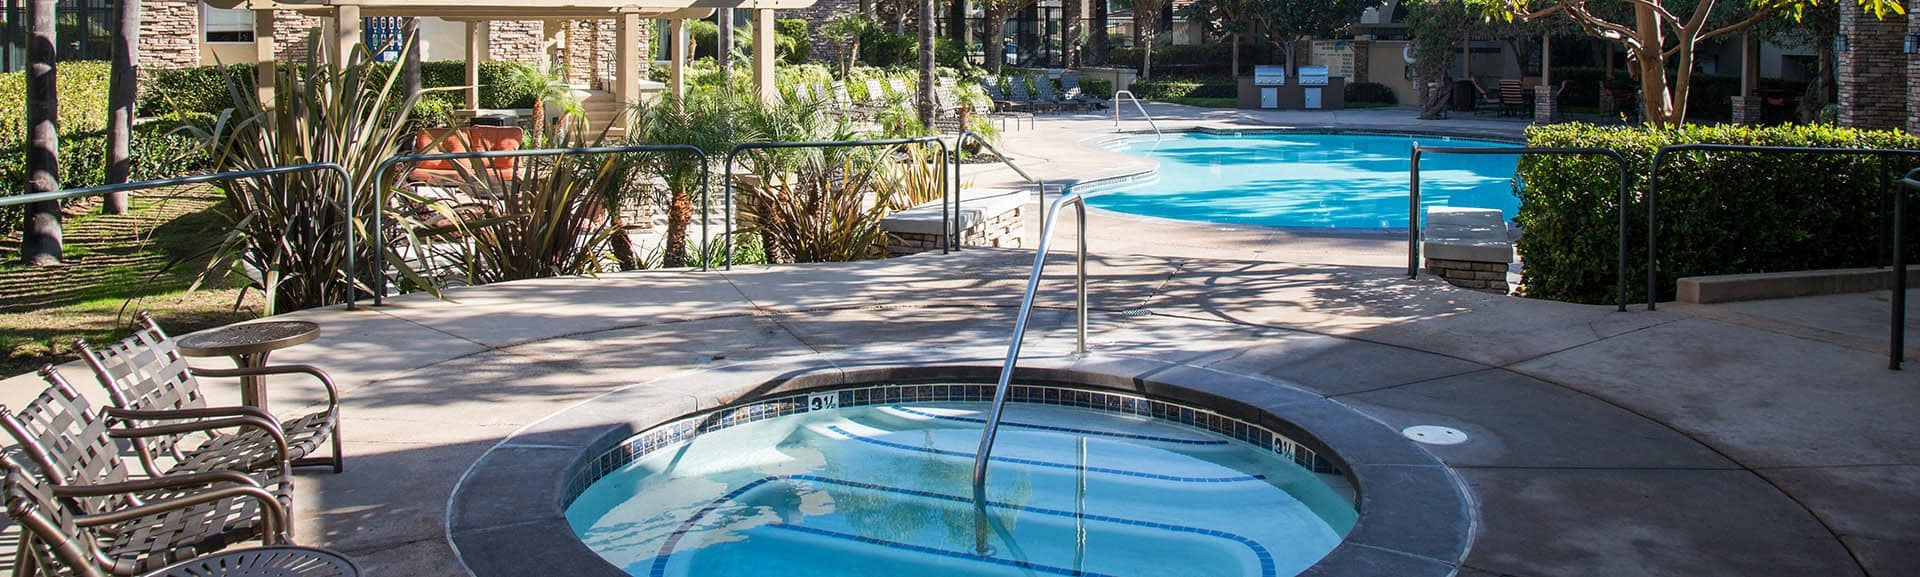 Read reviews of Alize at Aliso Viejo Apartment Homes on our website